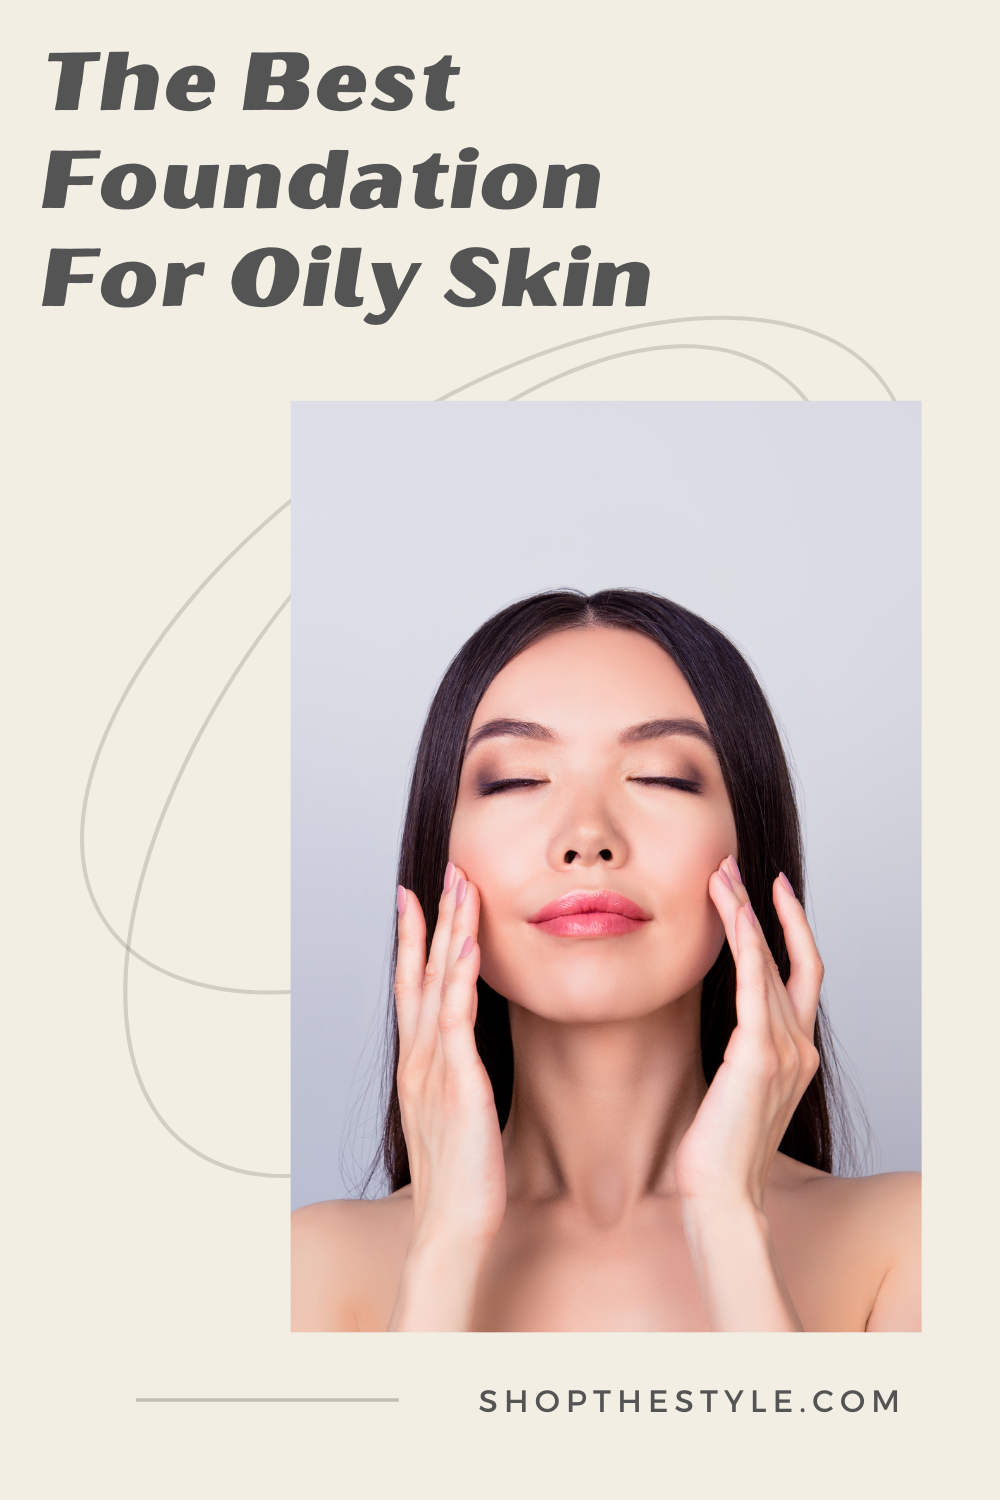 The Best Foundation for Oily Skin